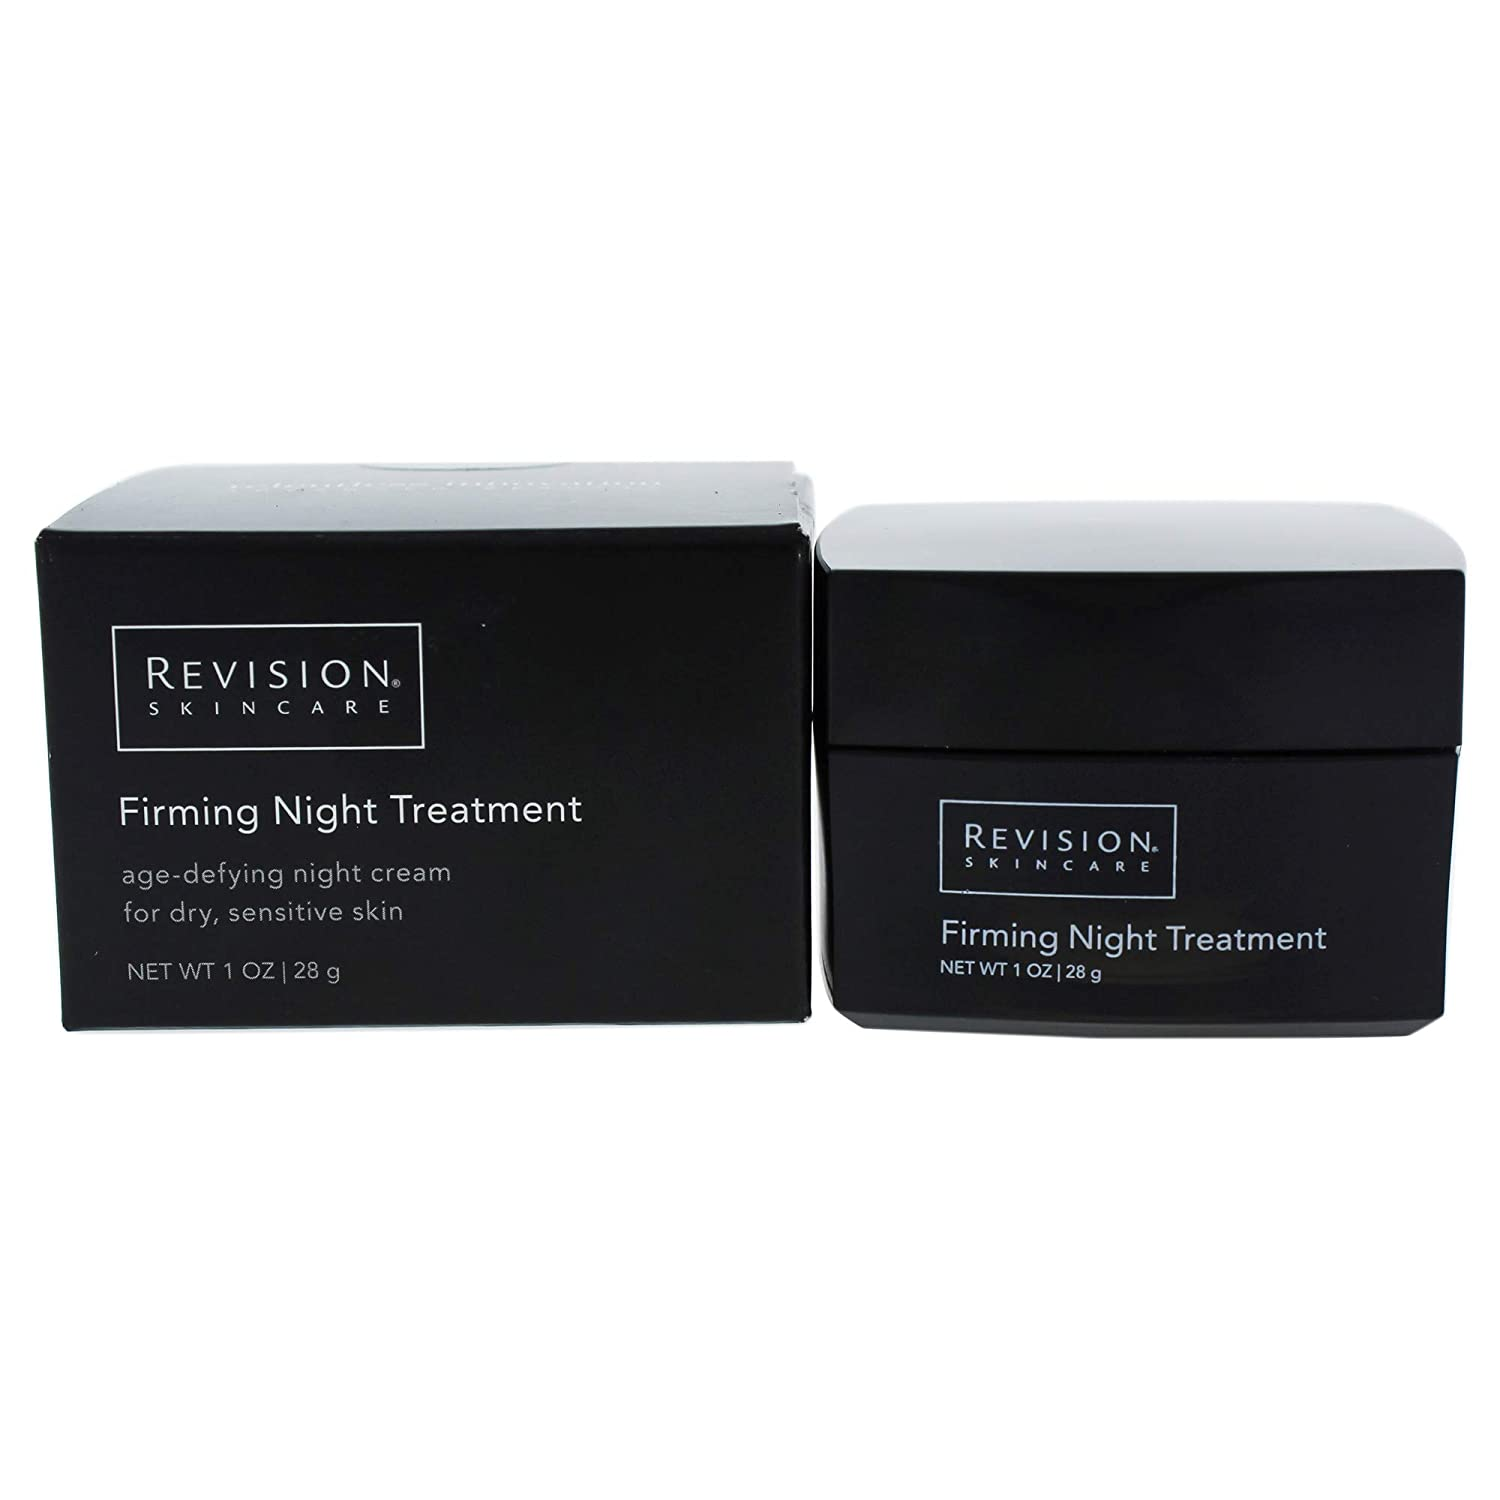 Revision Skincare Firming Night Treatment, 1 oz